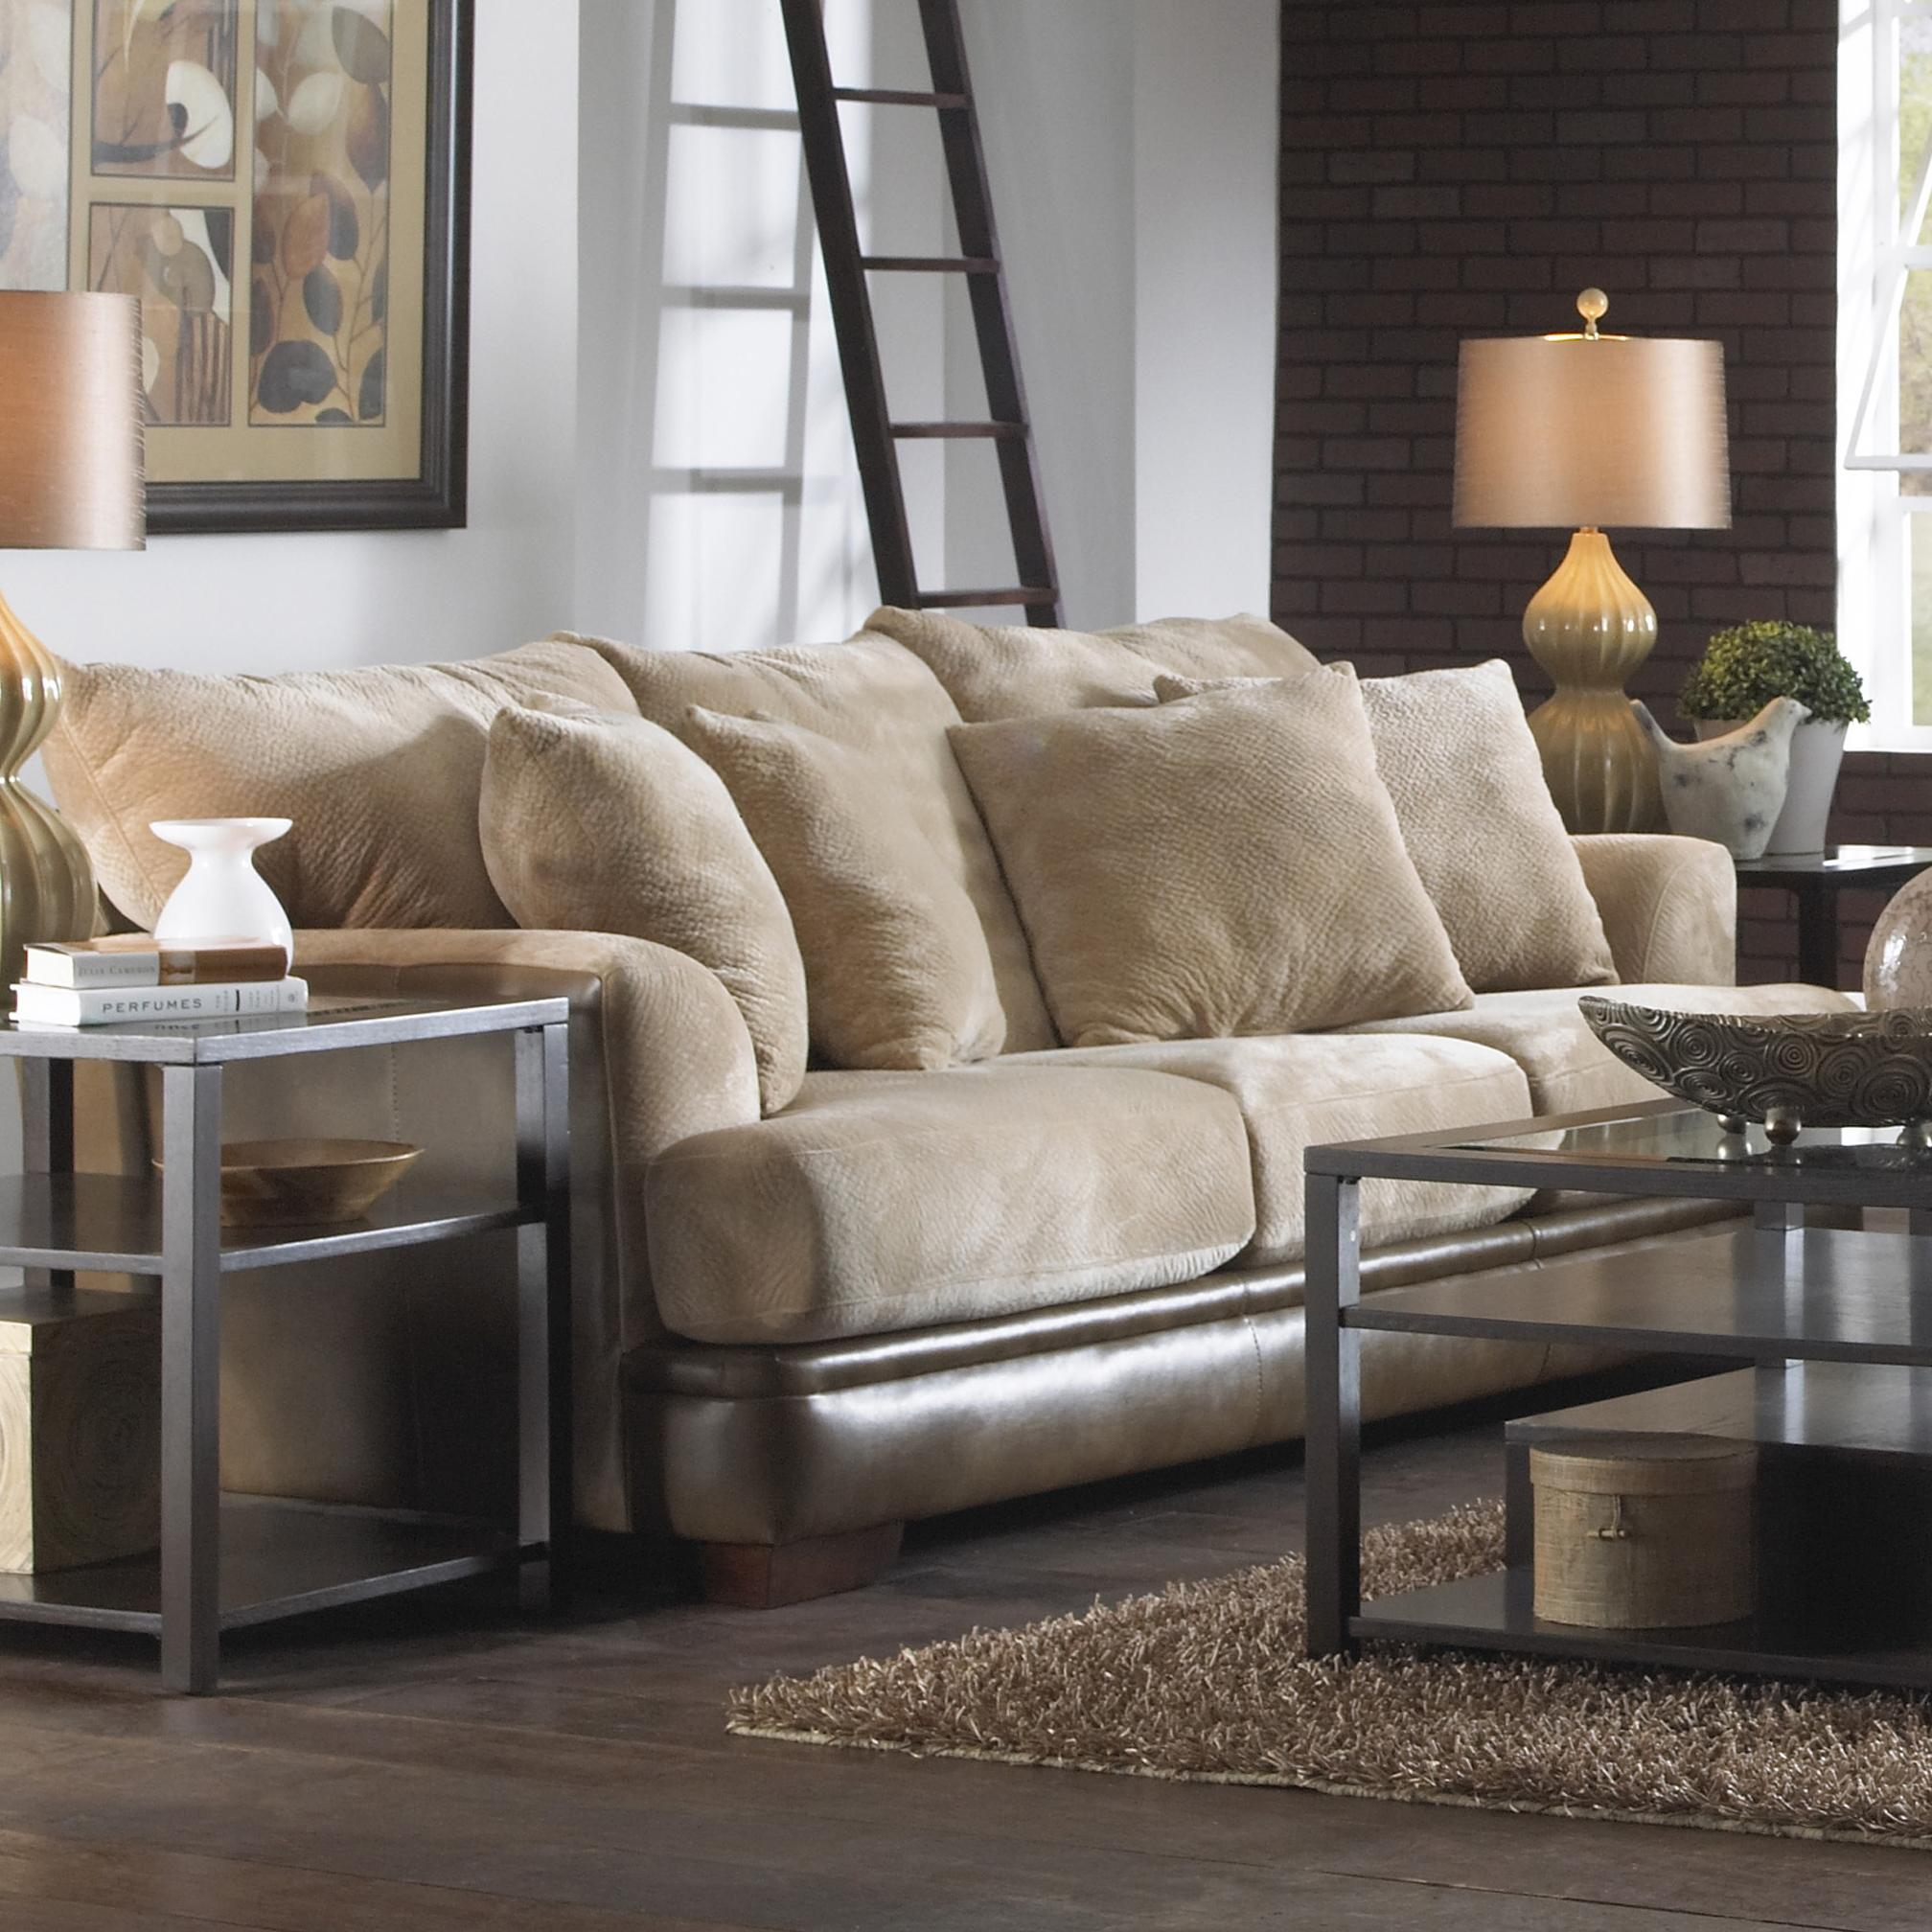 contemporary sofa with unique shark fin arms by jackson furniture wolf and gardiner wolf furniture. Black Bedroom Furniture Sets. Home Design Ideas